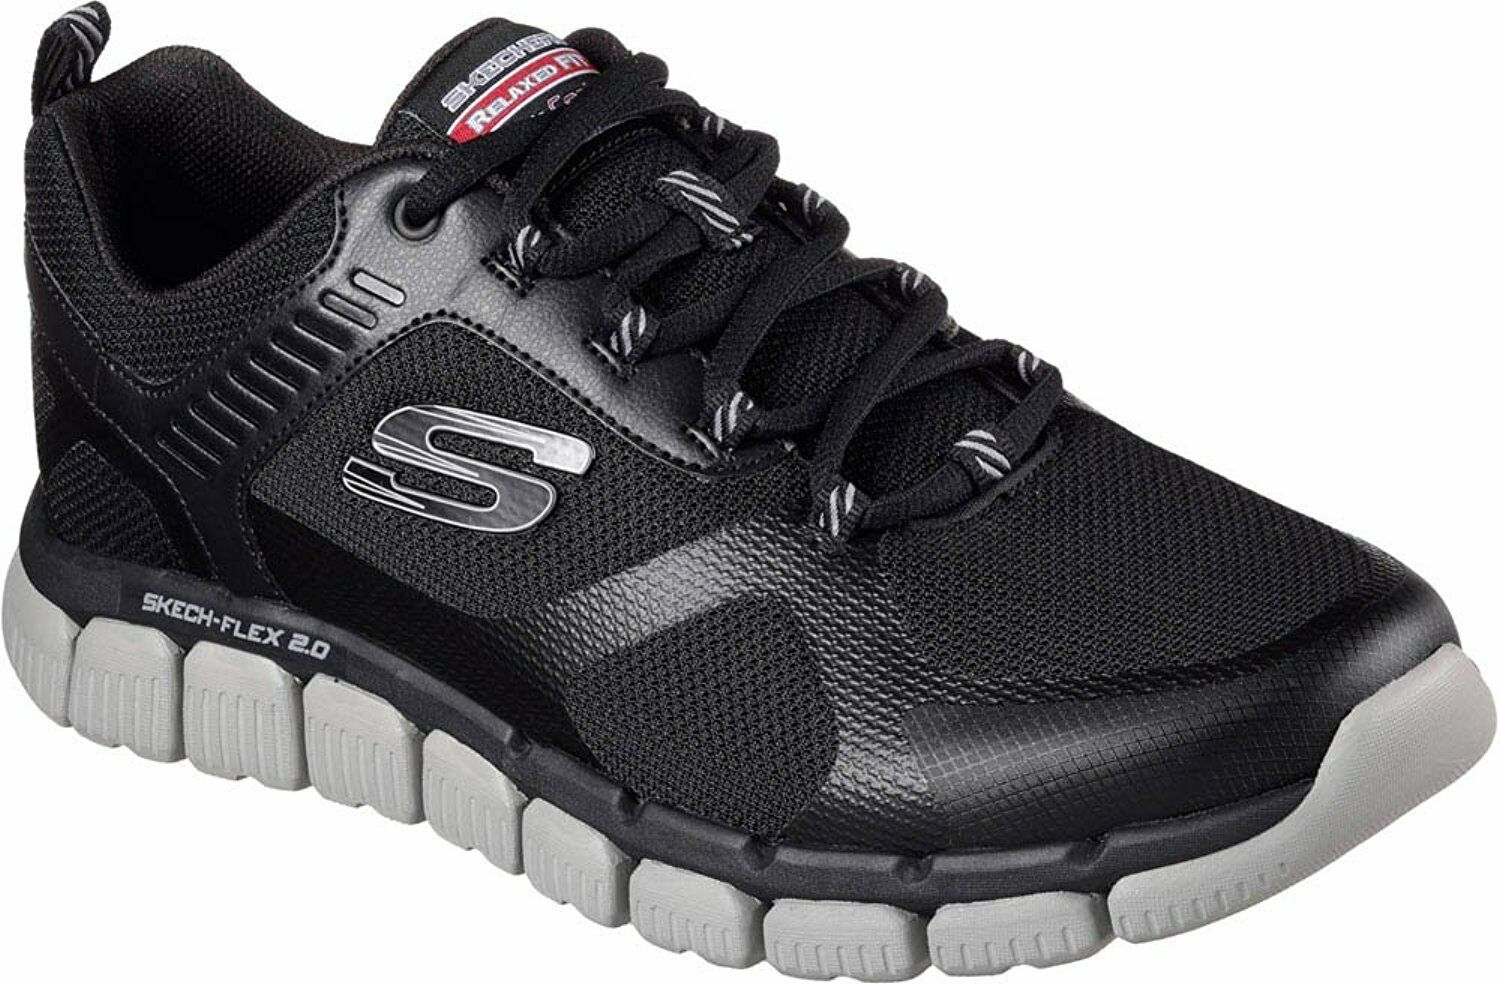 SKECHERS MENS SKECH-FLEX 2.0 KOMINAR MEMORY FOAM WALKING SHOES  52620 BKGY